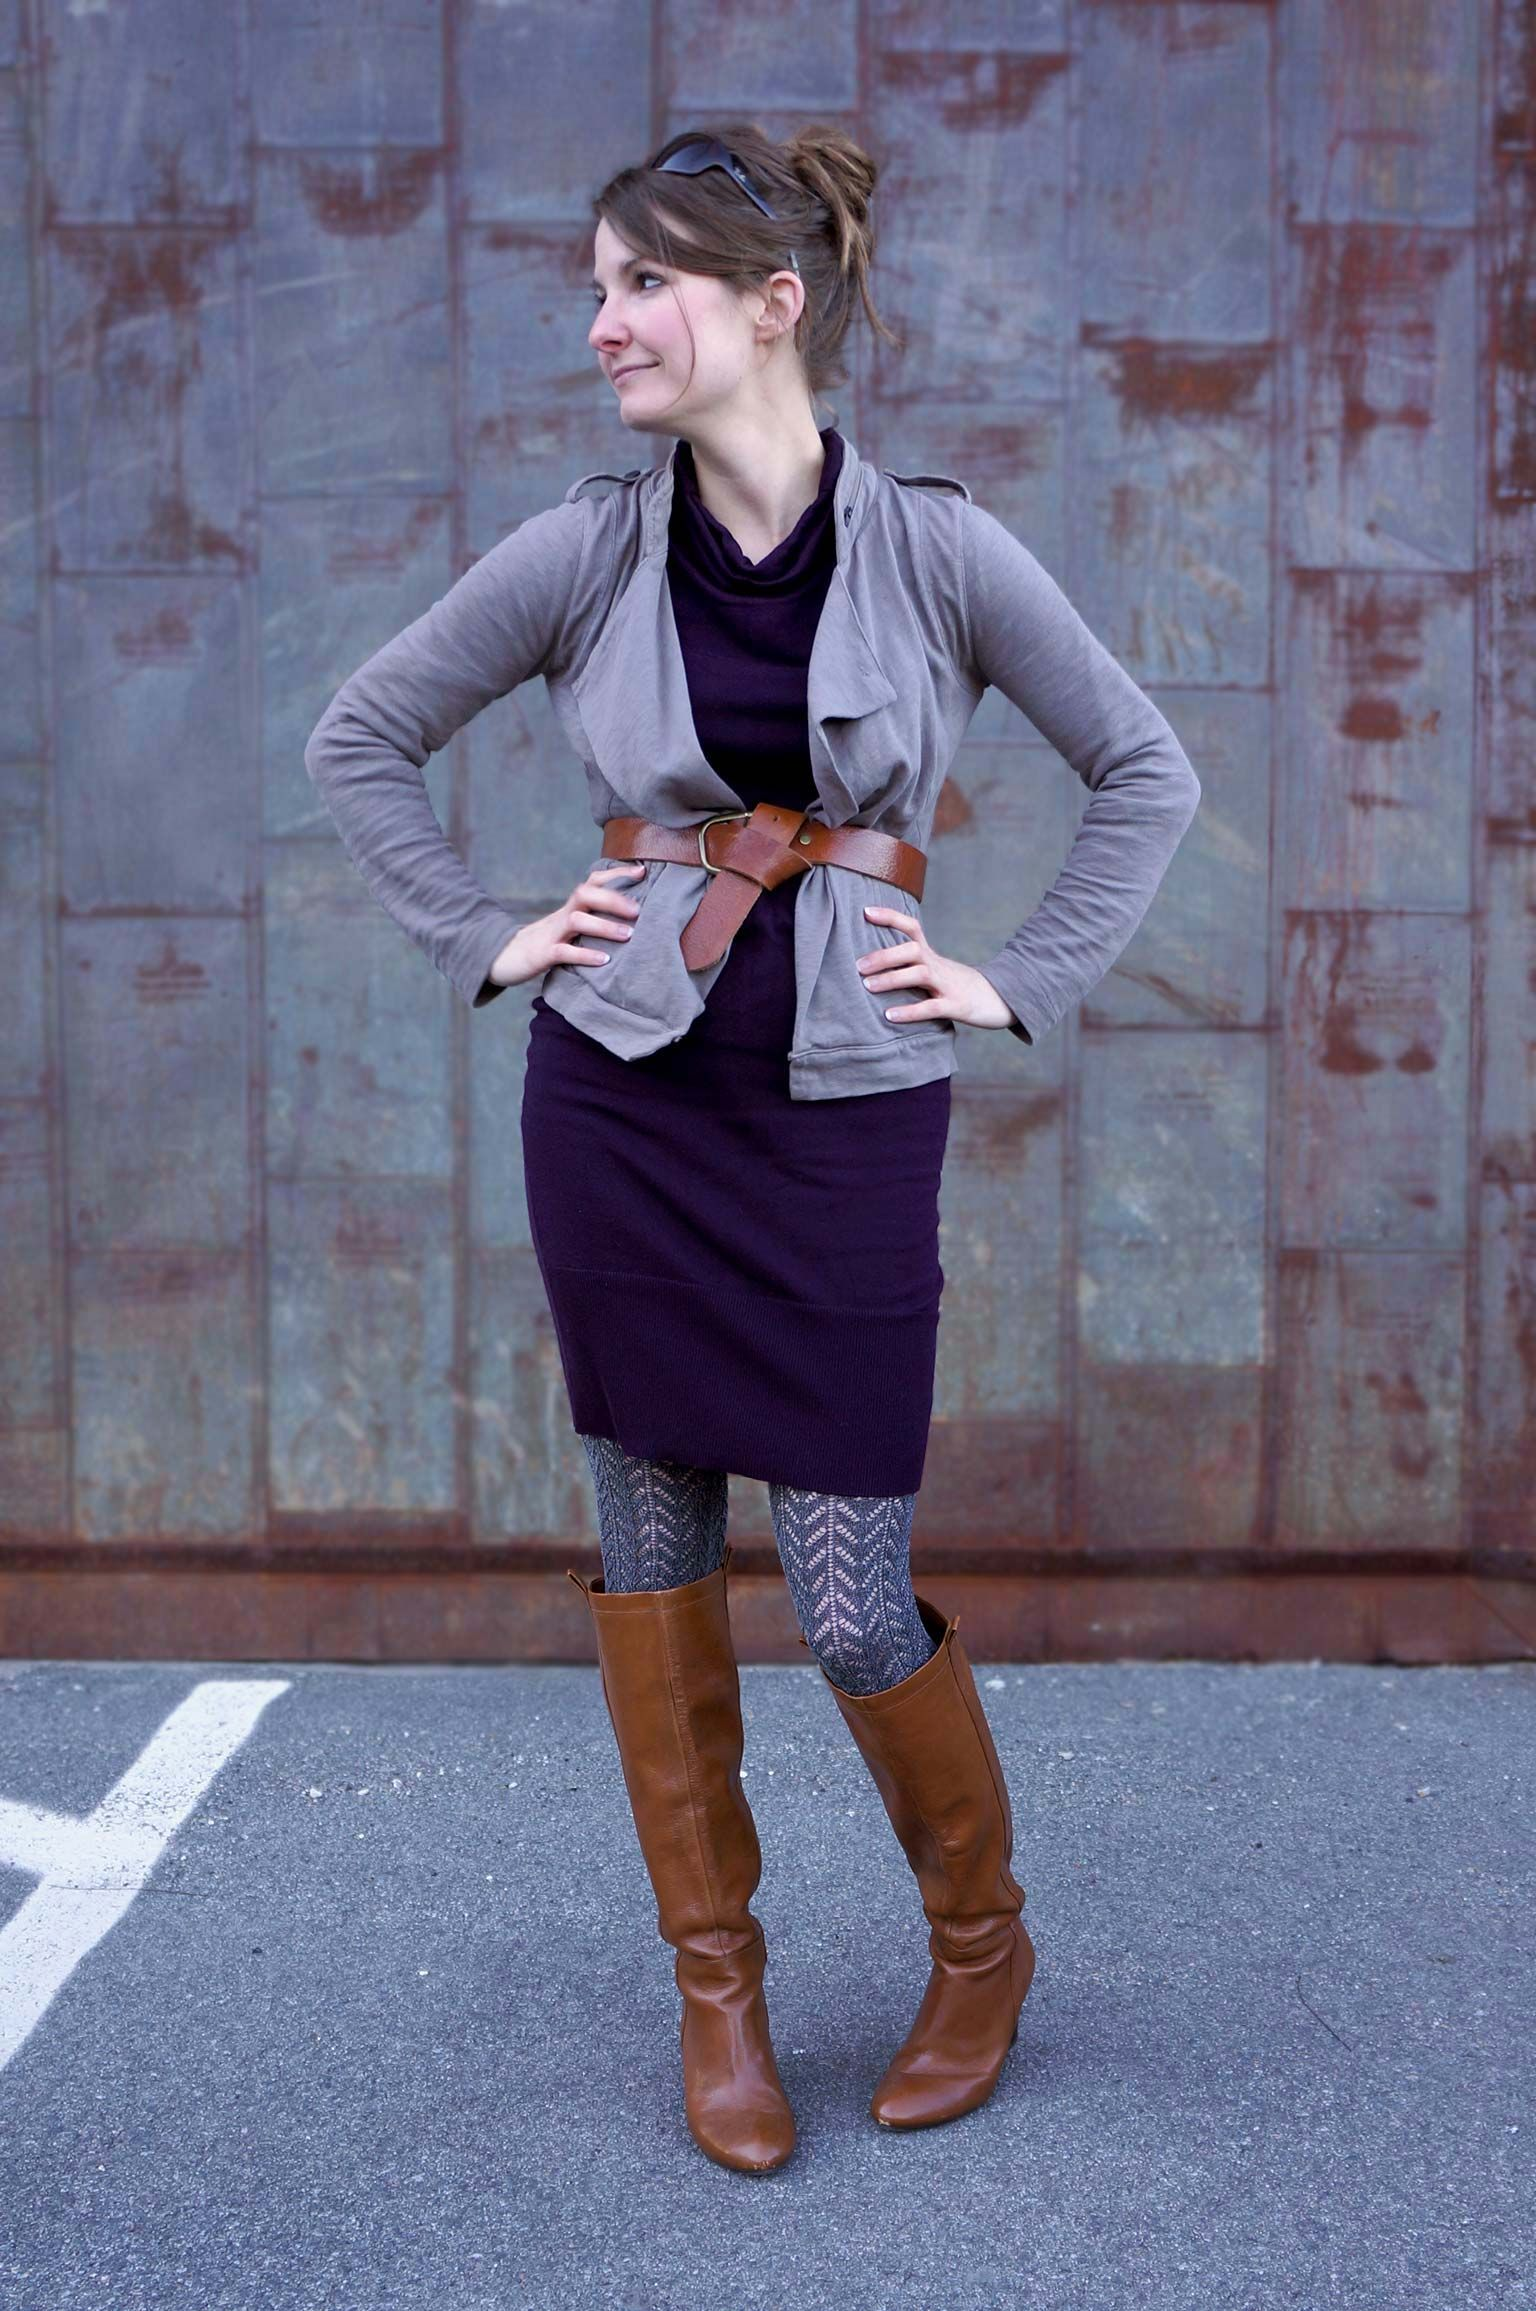 Belted Skirt and patterned tights